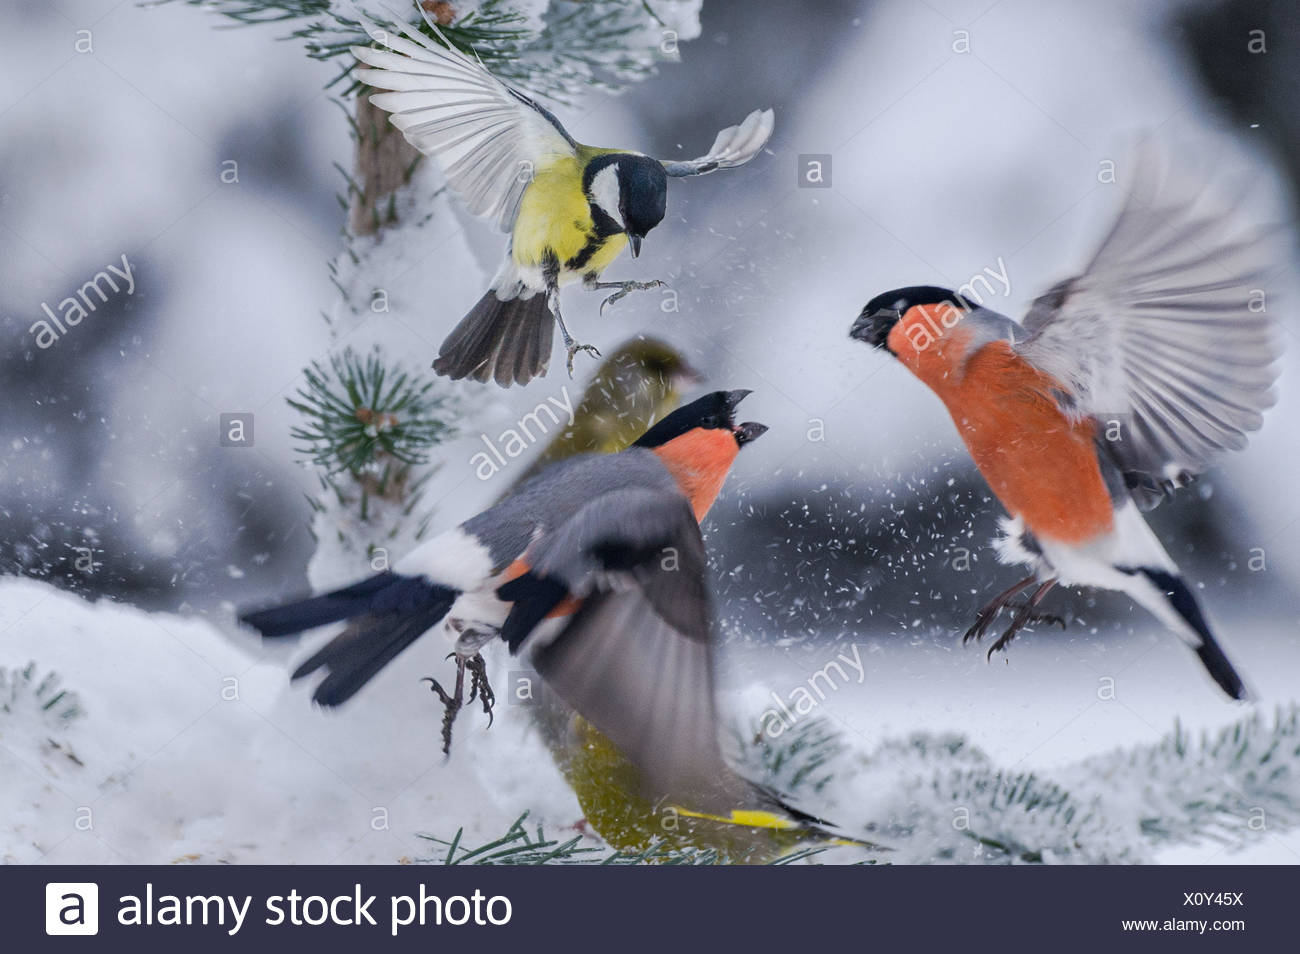 Bullfinches confronting on snowcapped tree - Stock Image